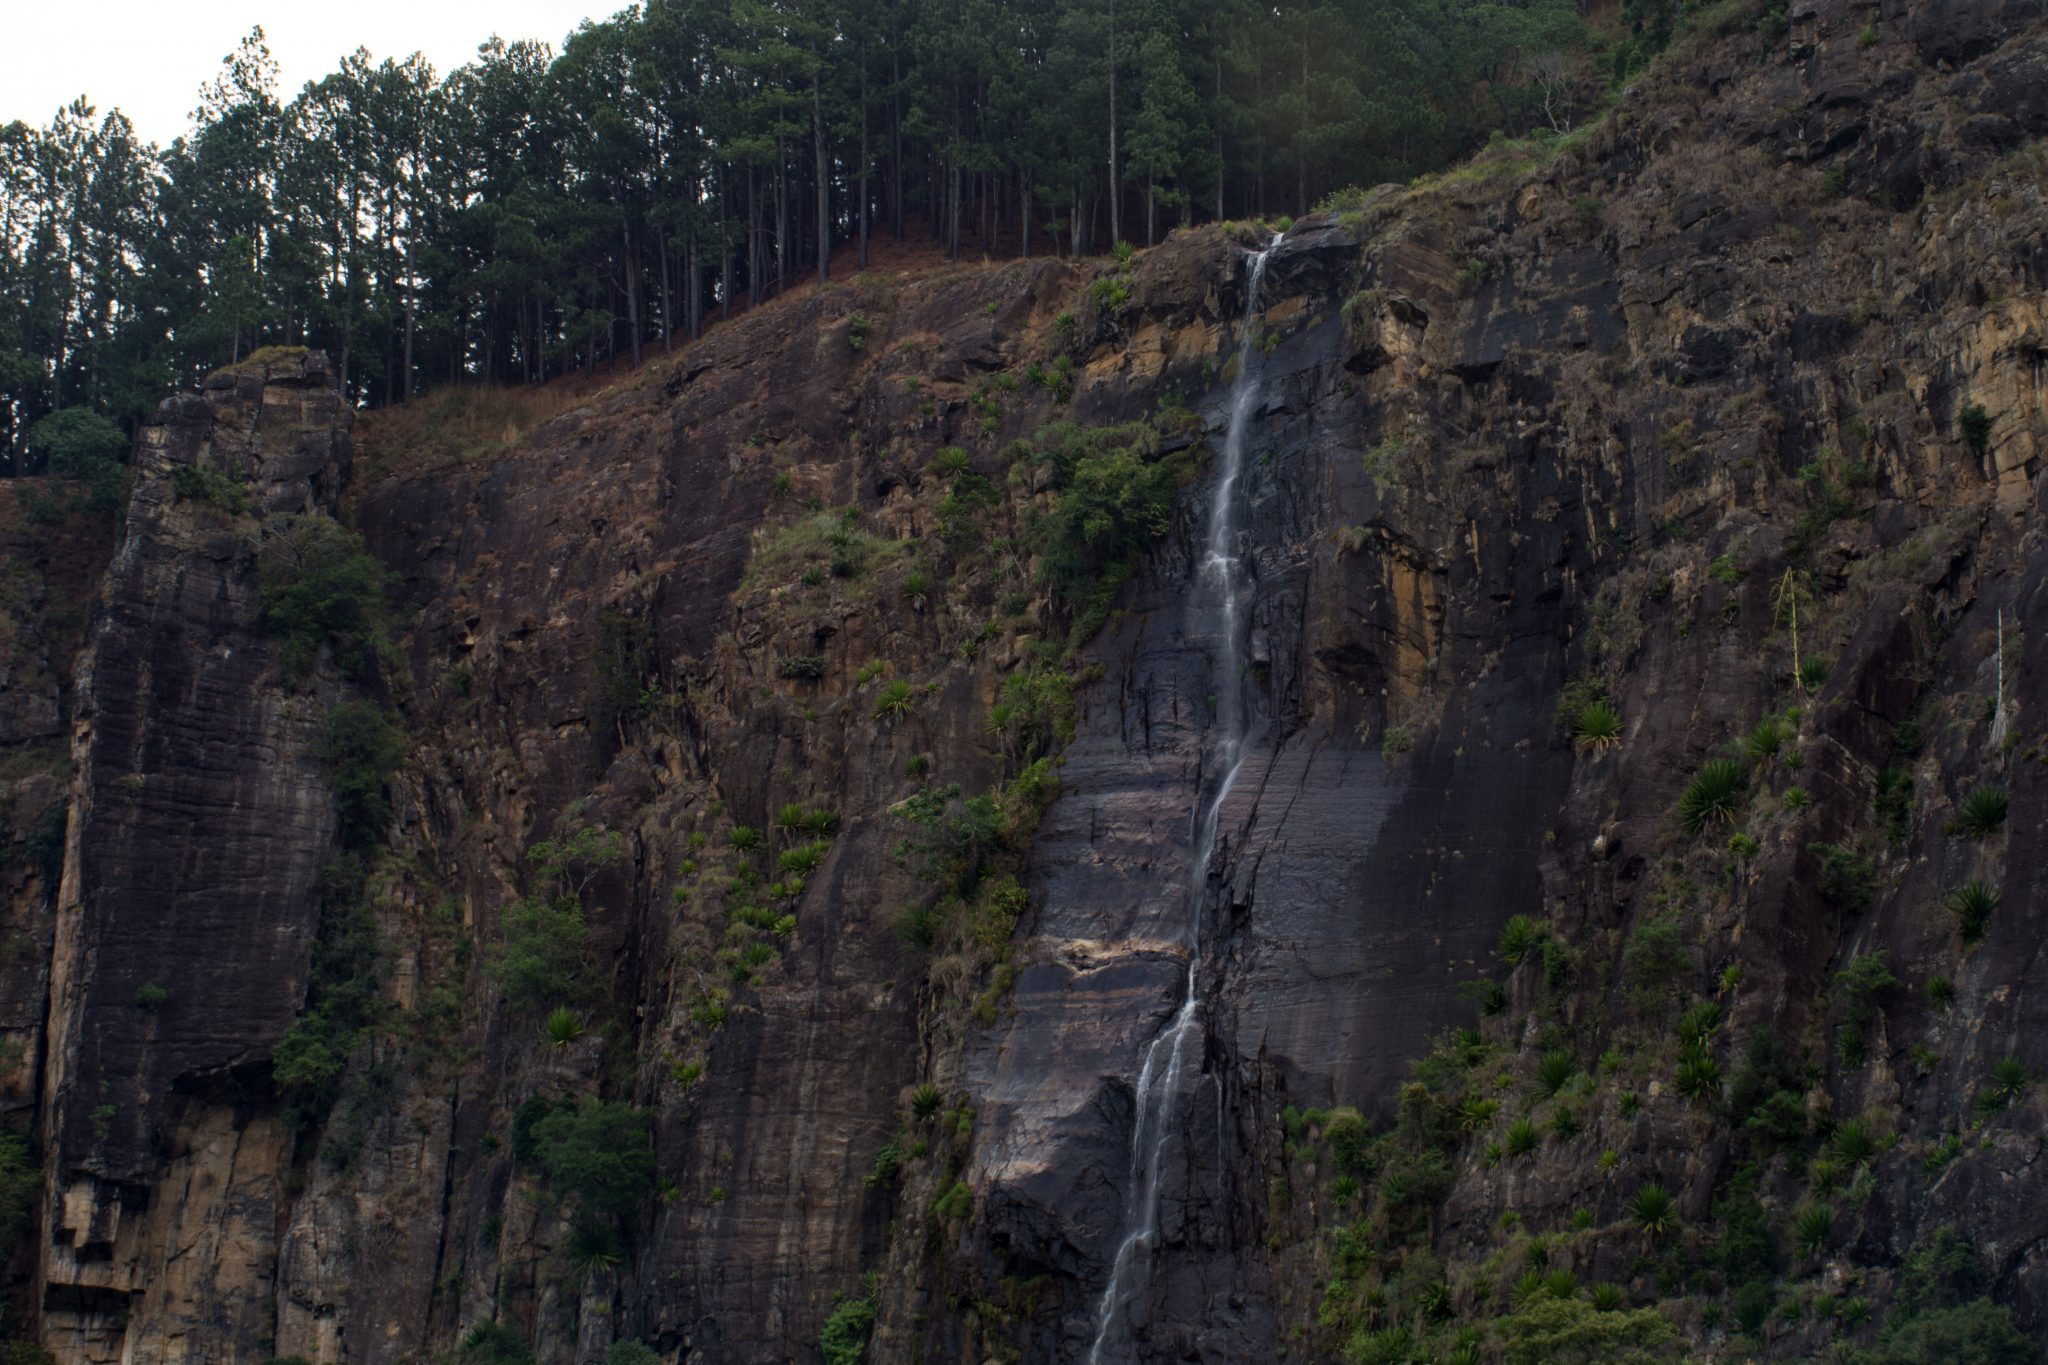 View of Bambarakanda Falls from road